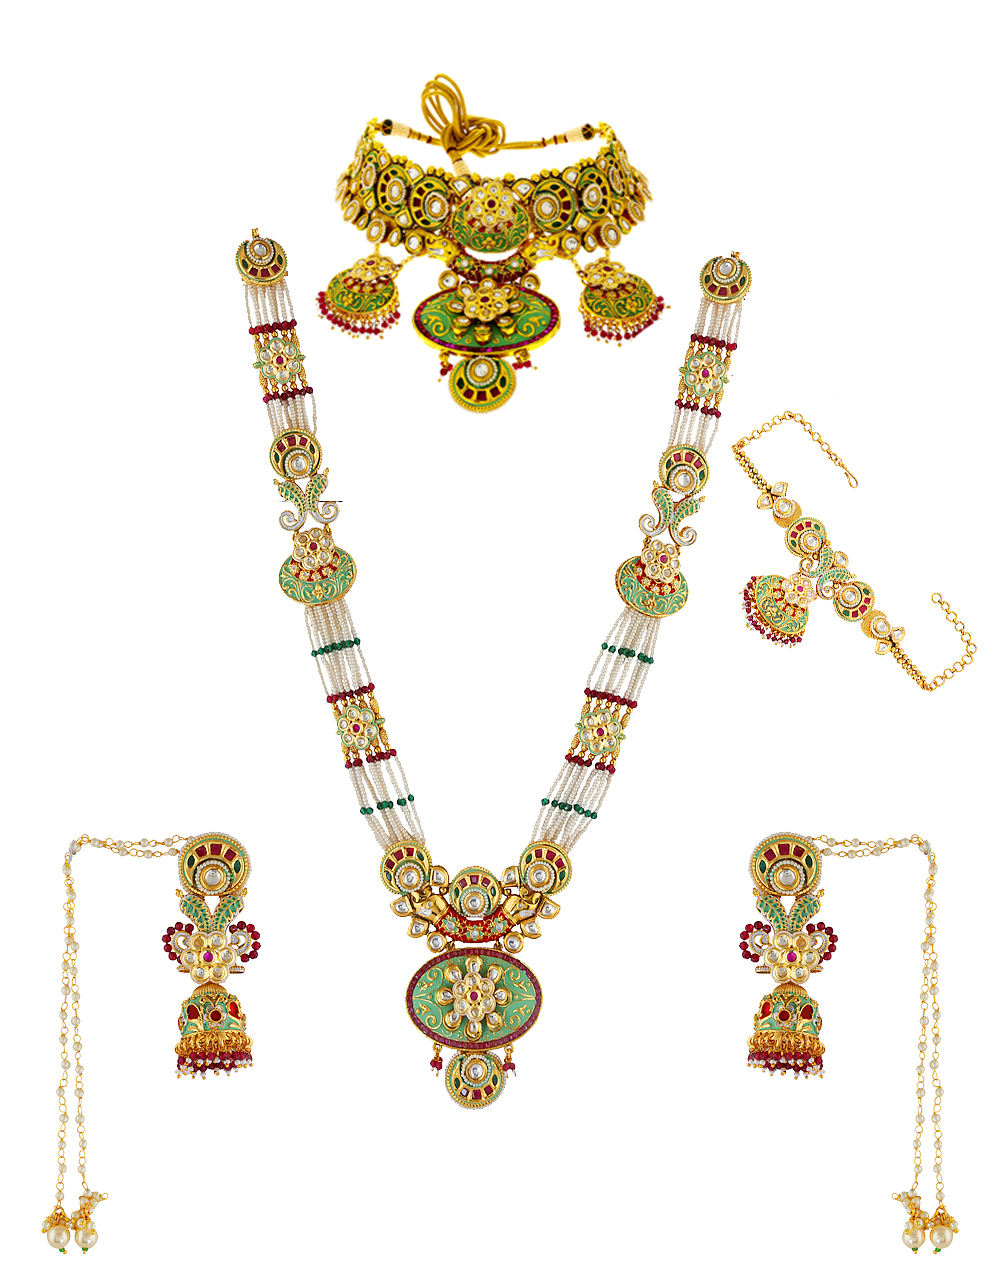 Green Colour Moti Styled Dulhan Necklace For Bride